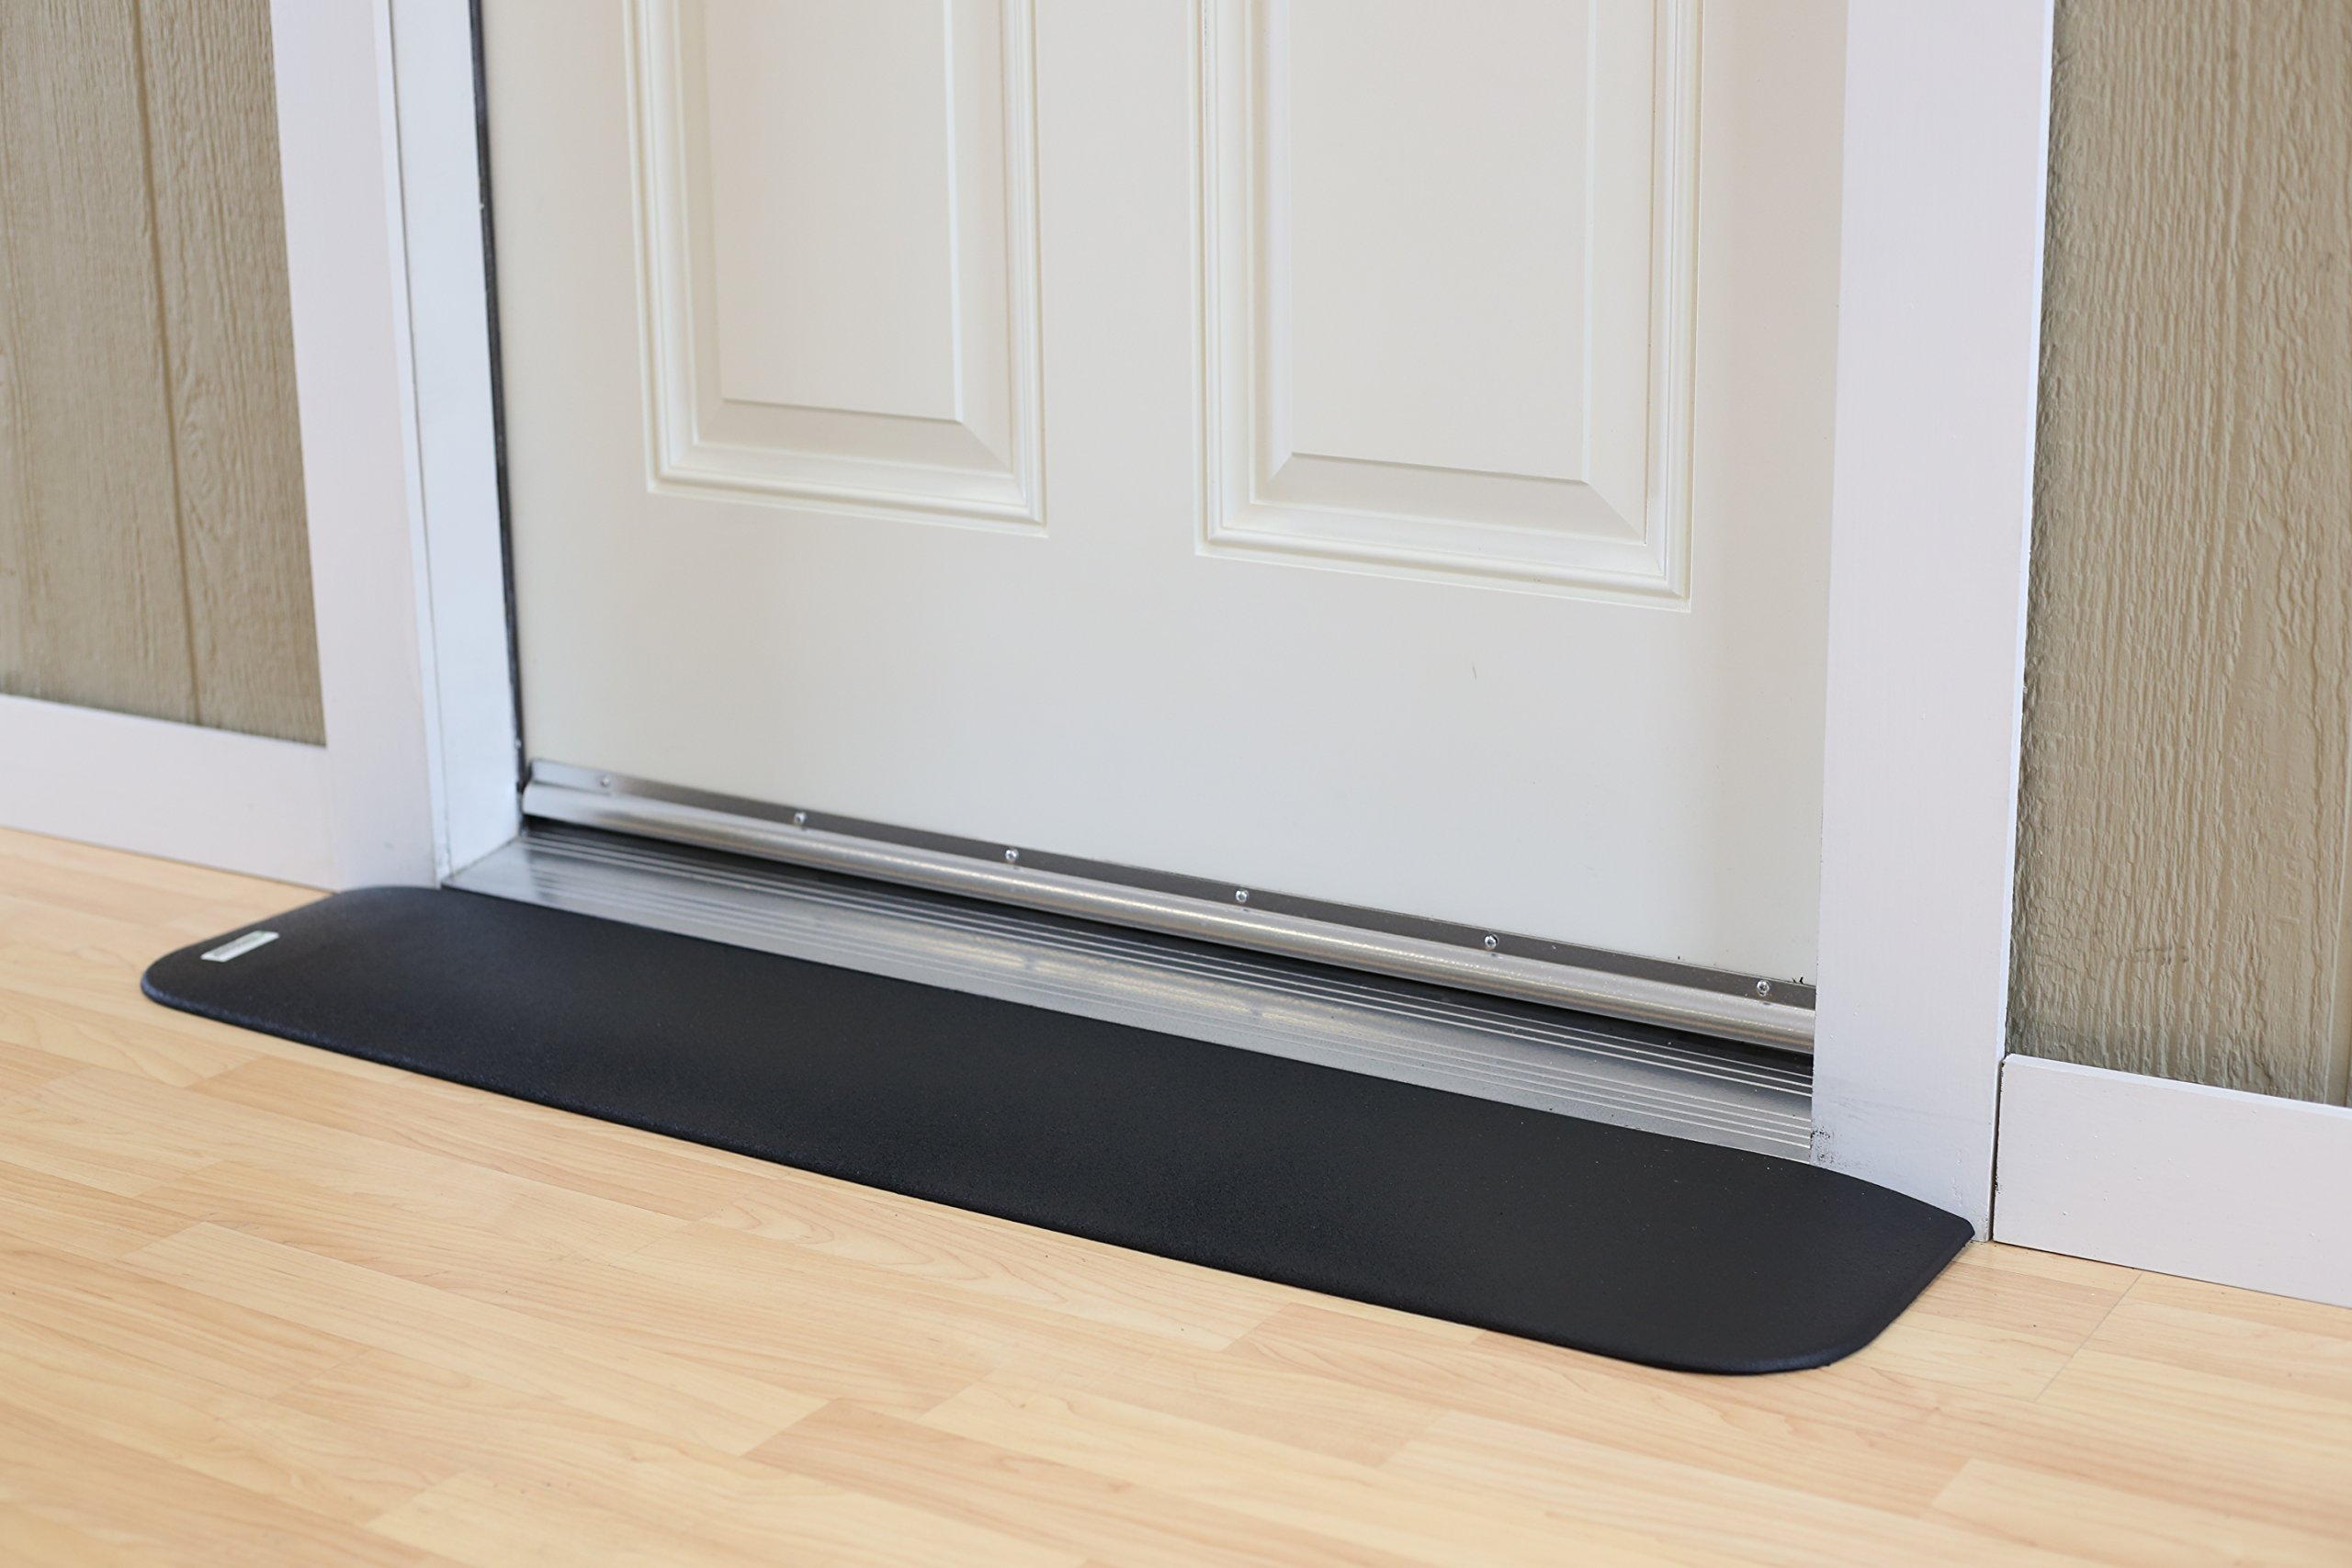 EZEdge Transition Threshold Ramp For a Door Sill, 7/8'' Rise, 7/8'' x 8'' x 41½'' by EZEdge